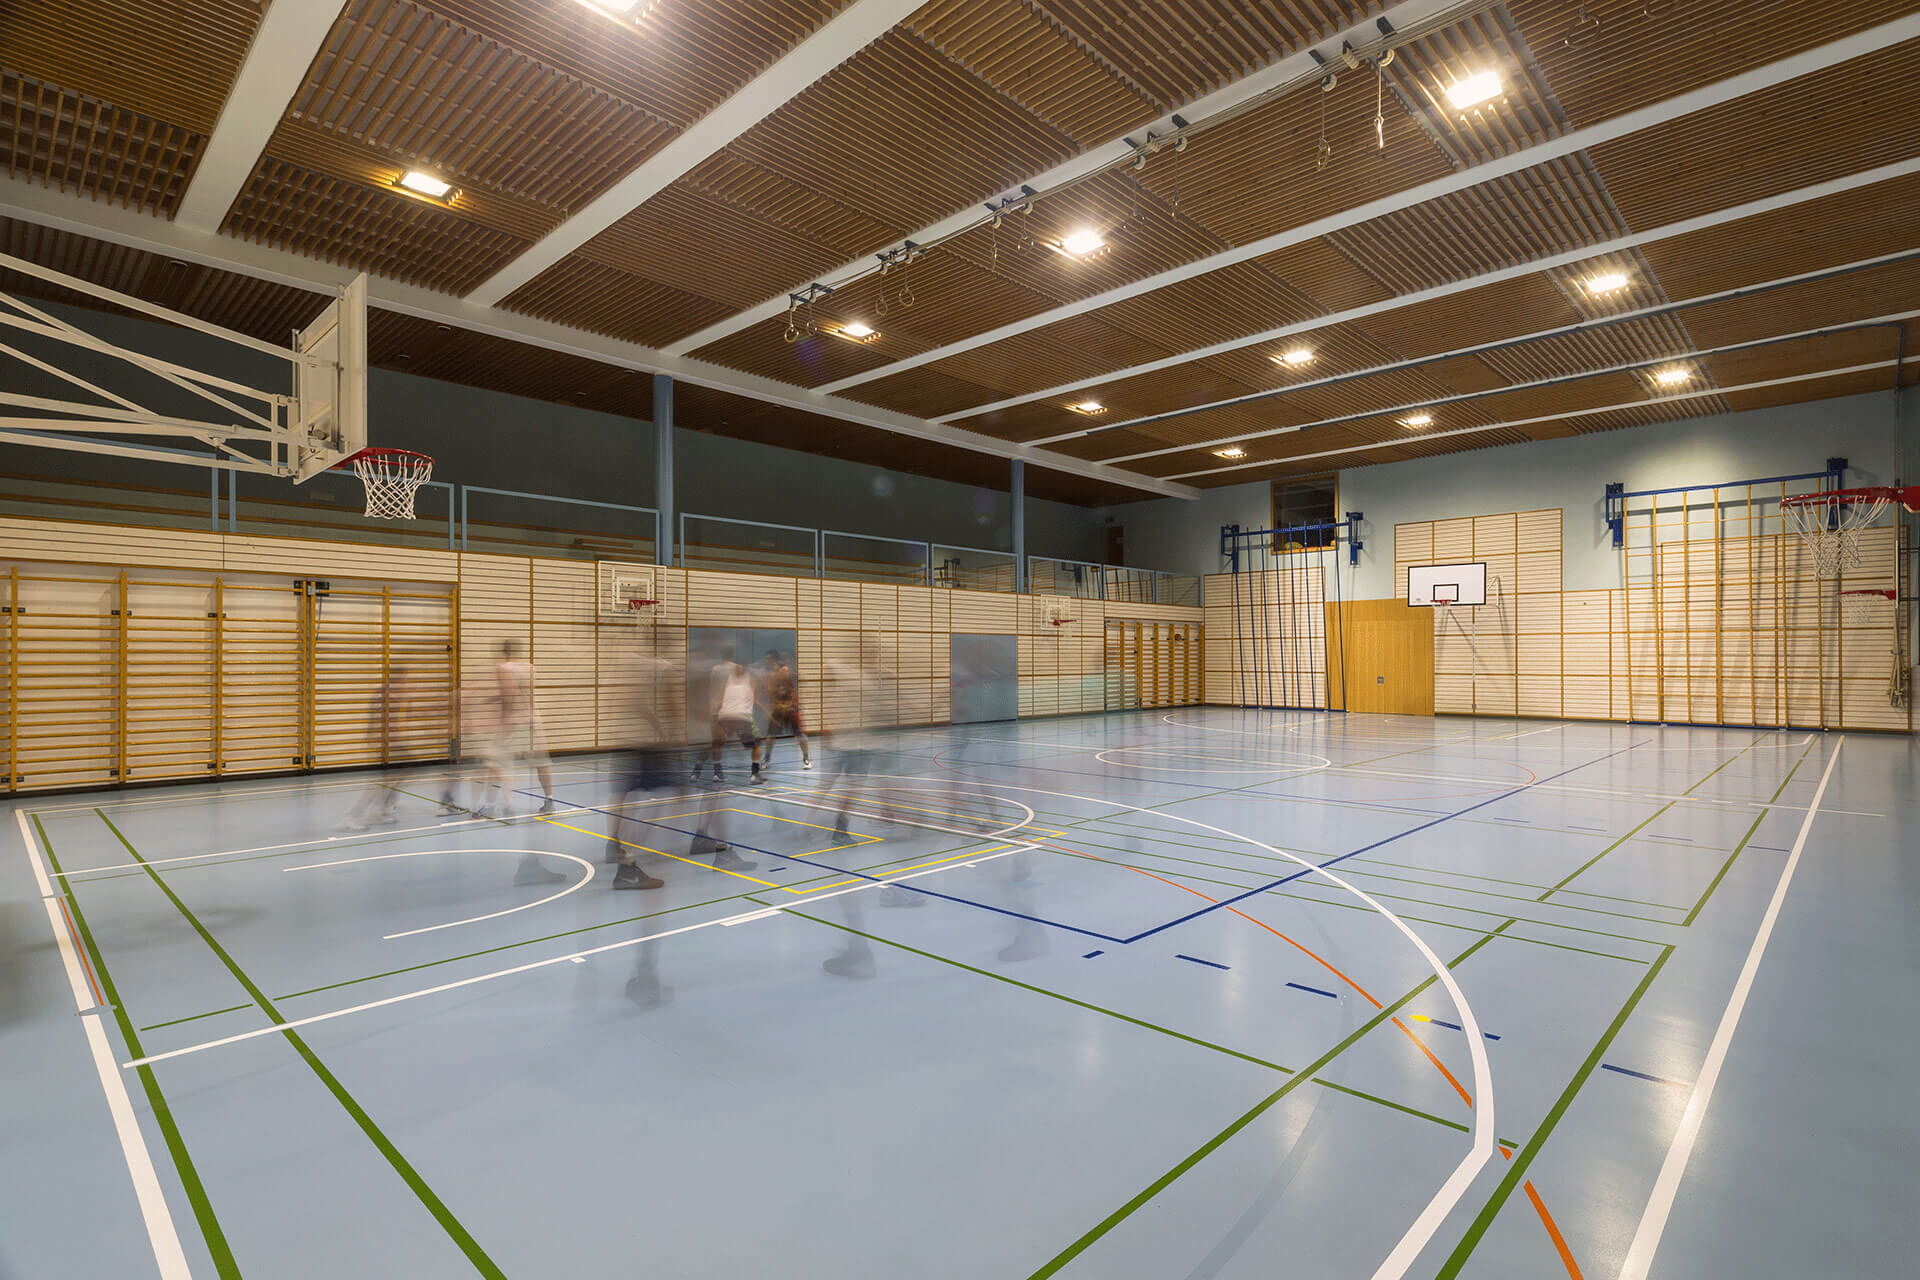 OMNIstar cuts the energy consumption for this sports hall by 45% while improving the overall light uniformity and visual comfort